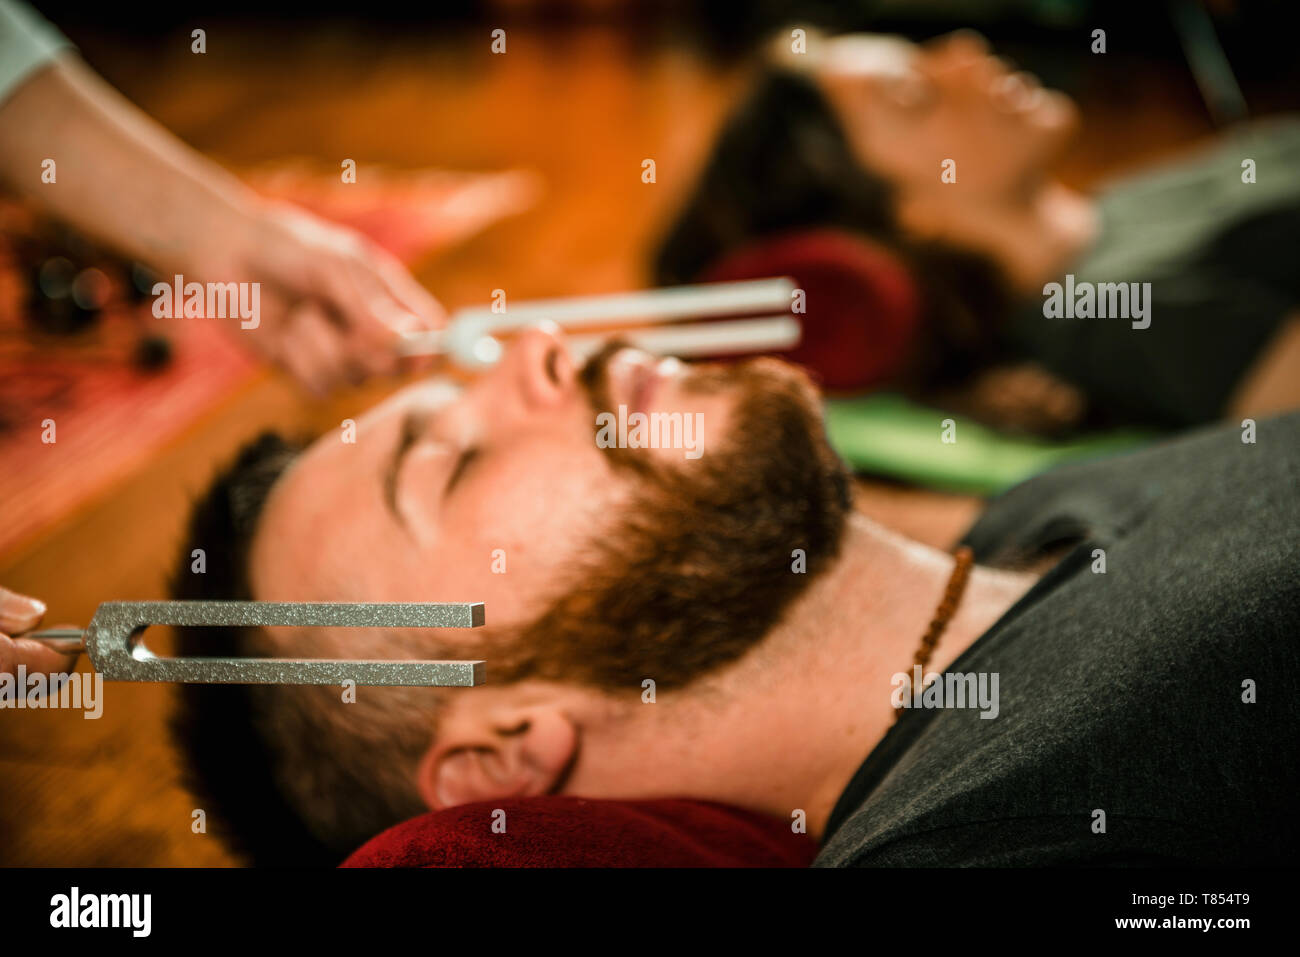 Tuning fork sound therapy Stock Photo